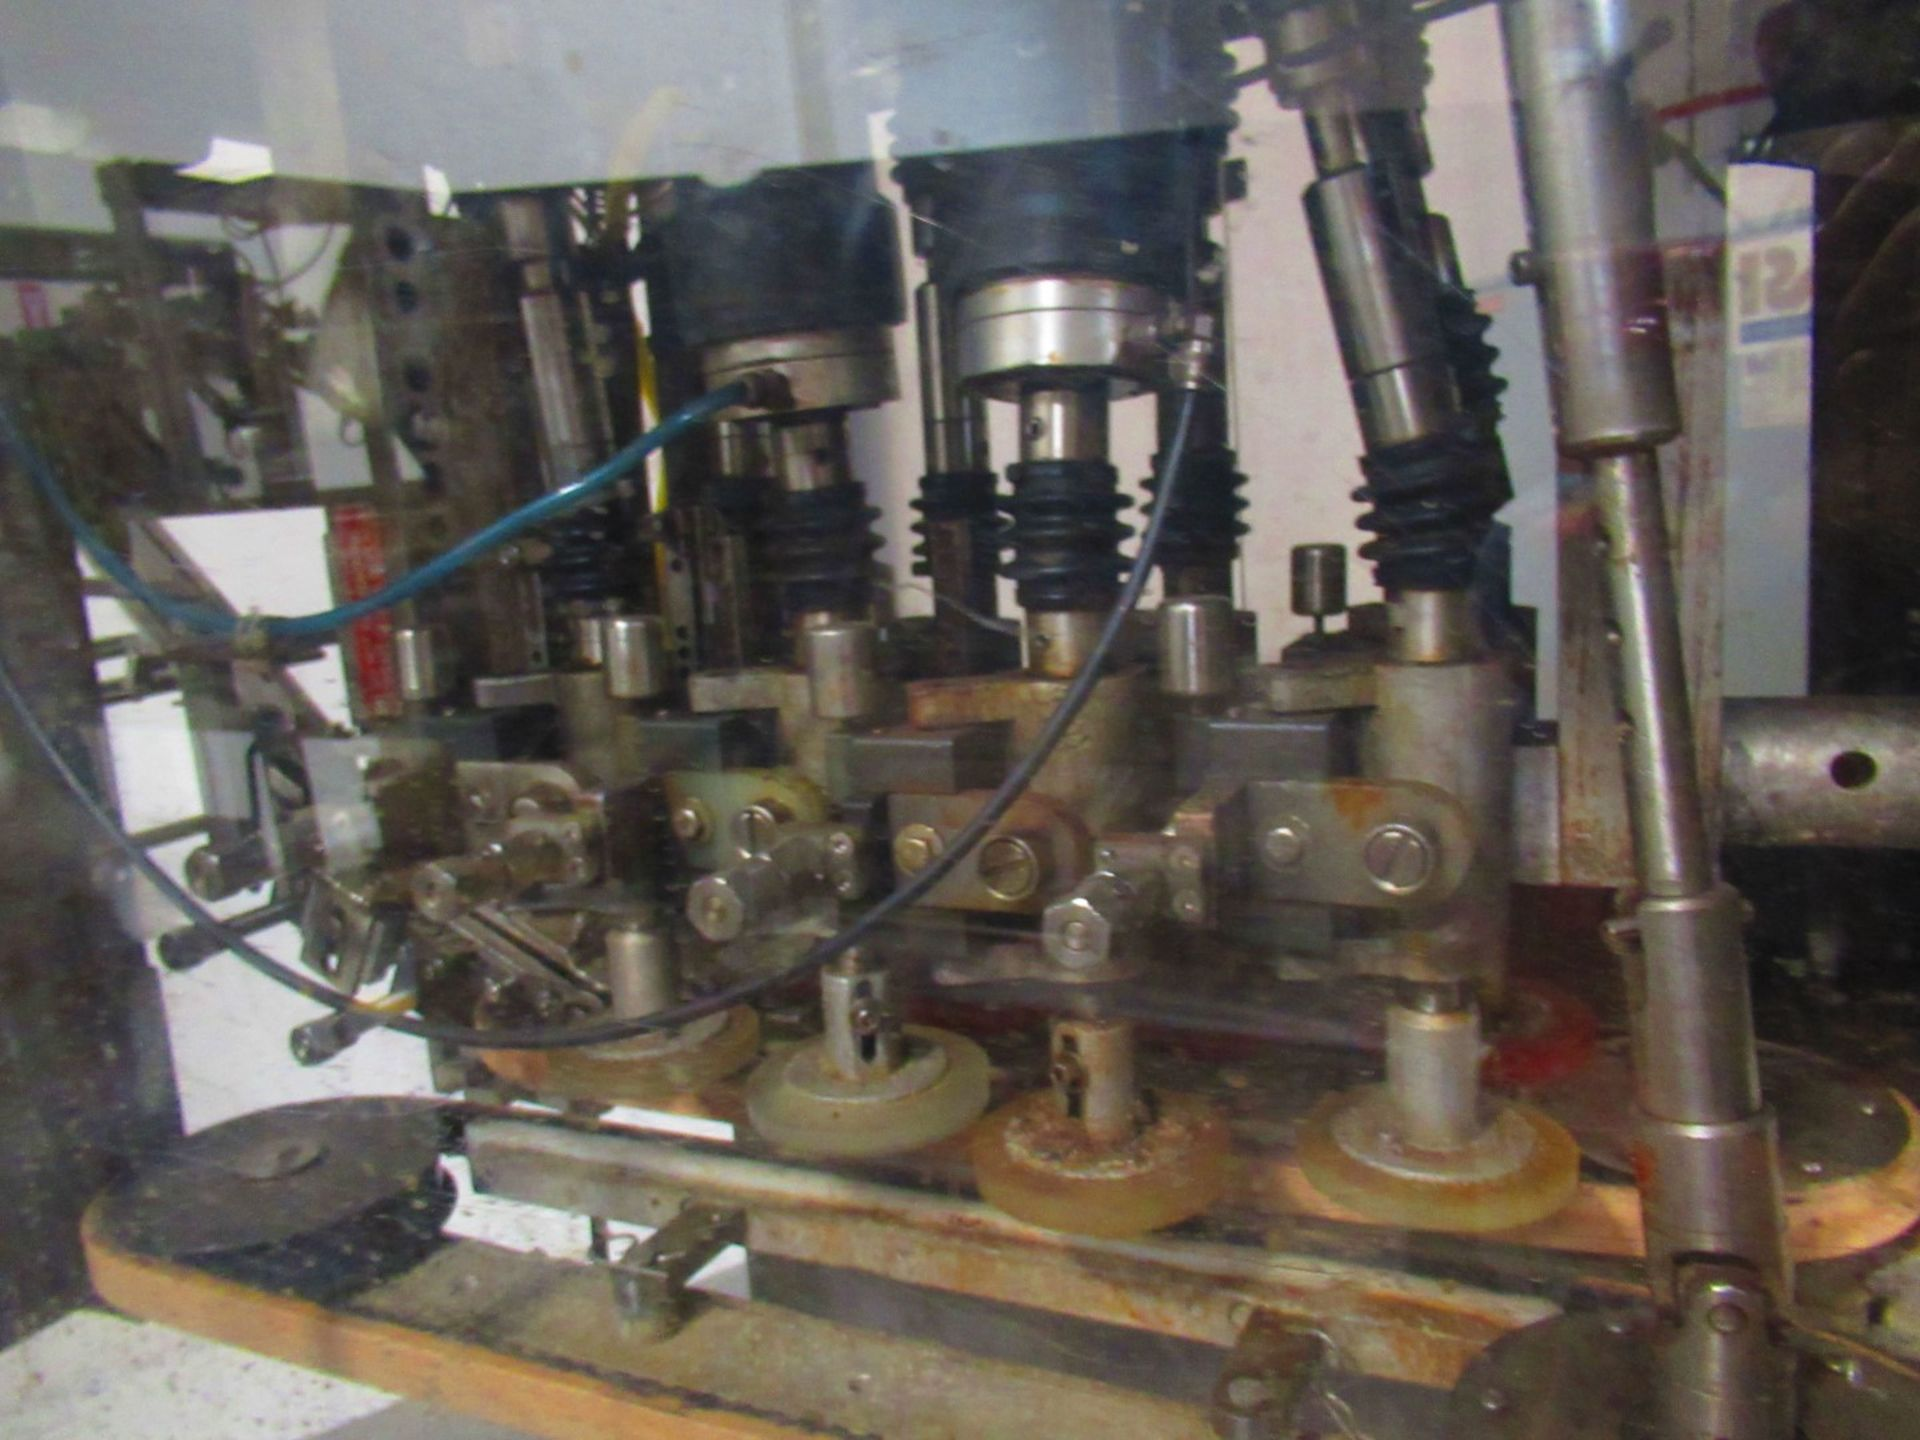 Spindle Capper - Image 2 of 6